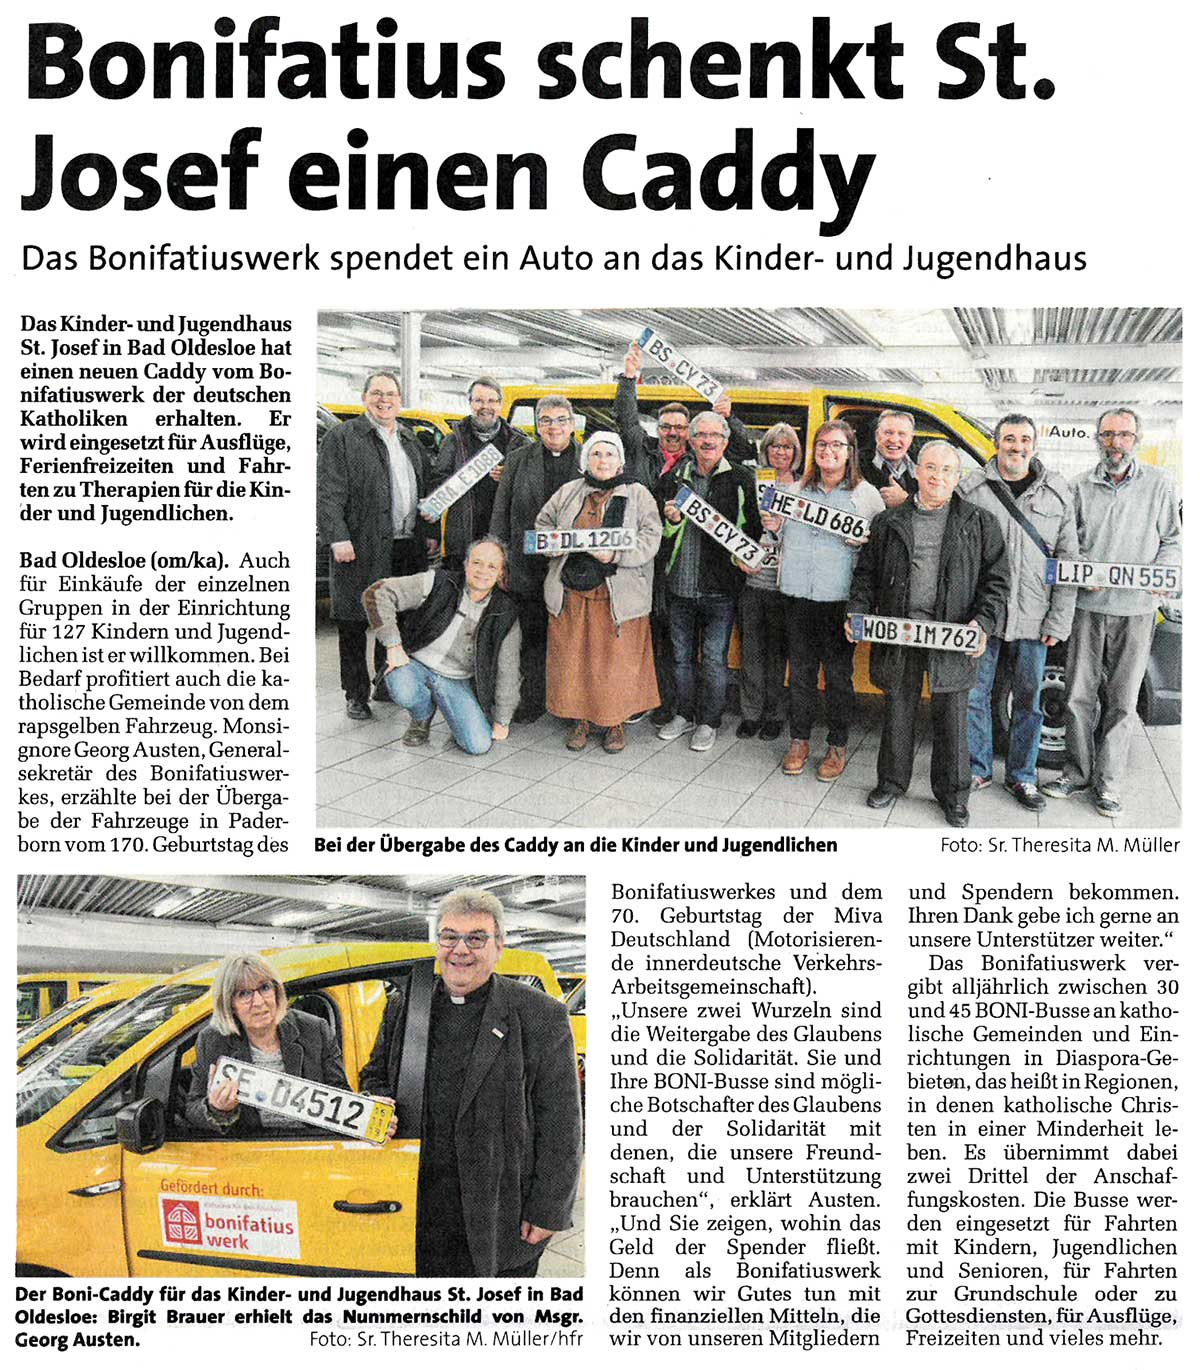 Ein Caddy vom Bonifatiuswerk für Bad Oldesloe